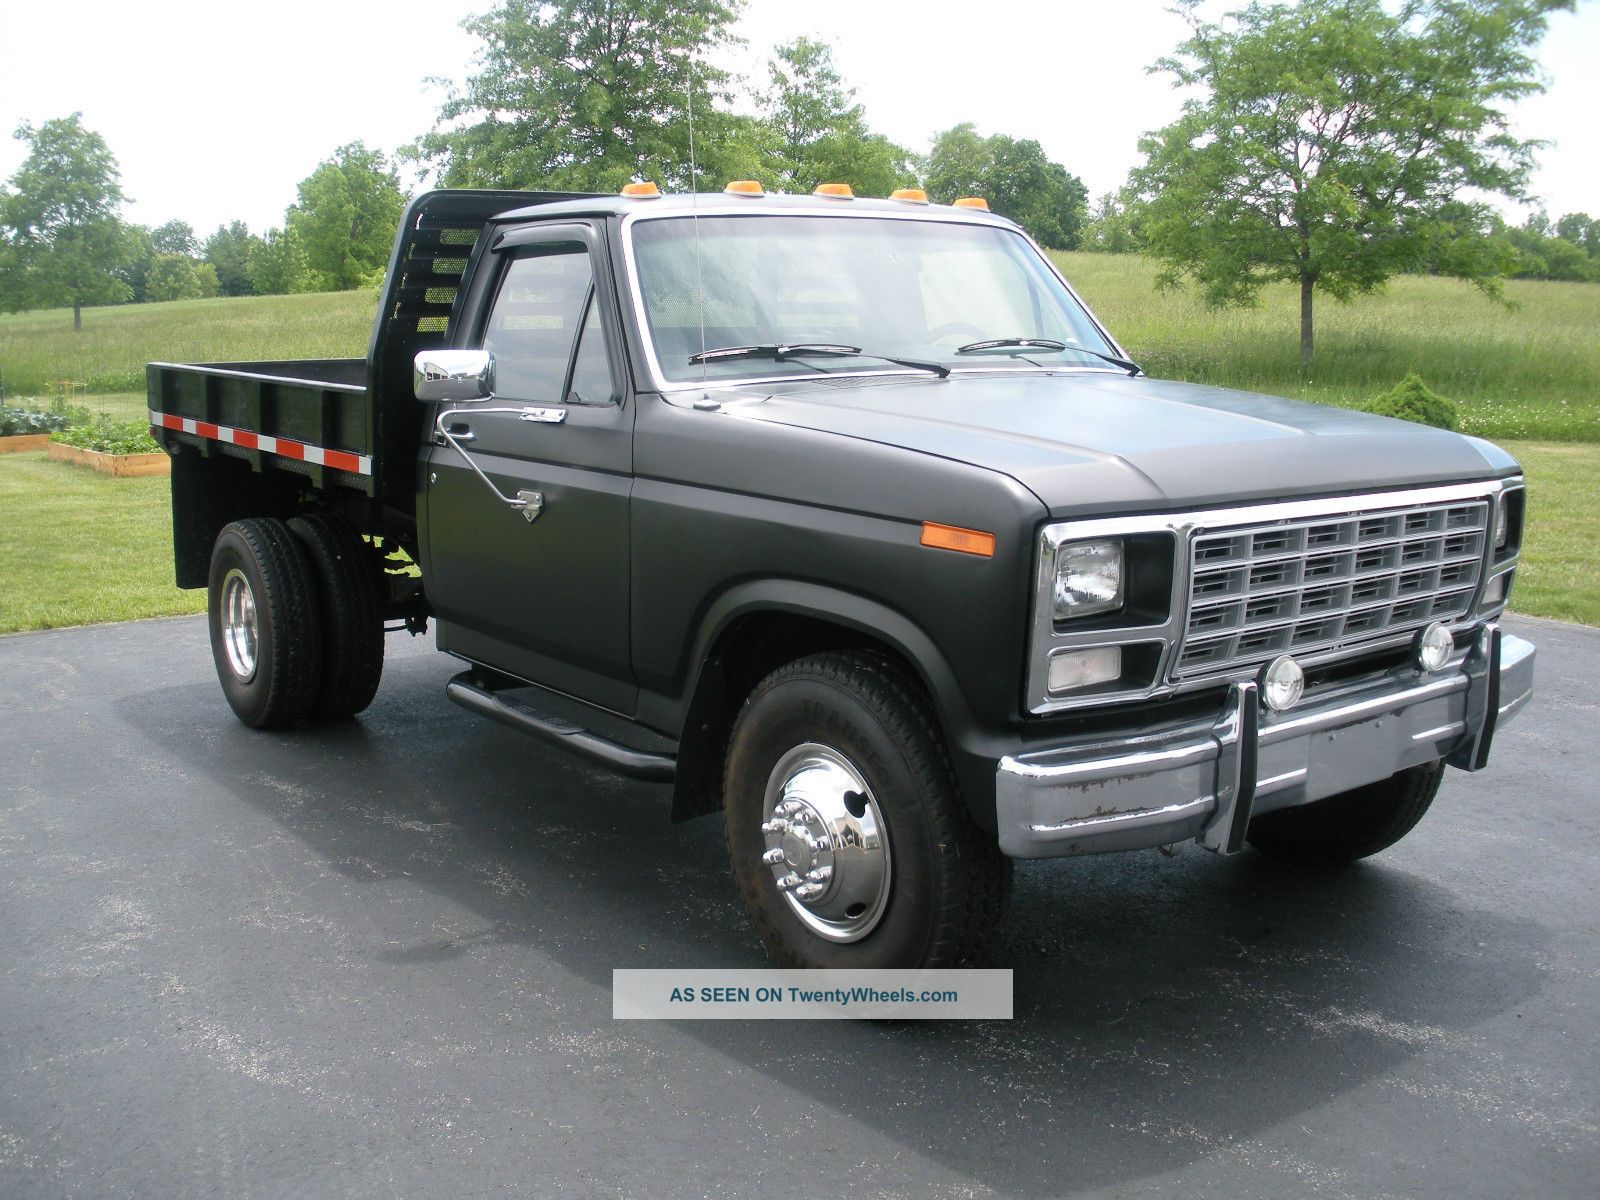 used ford f350 dump trucks for sale autos post. Black Bedroom Furniture Sets. Home Design Ideas